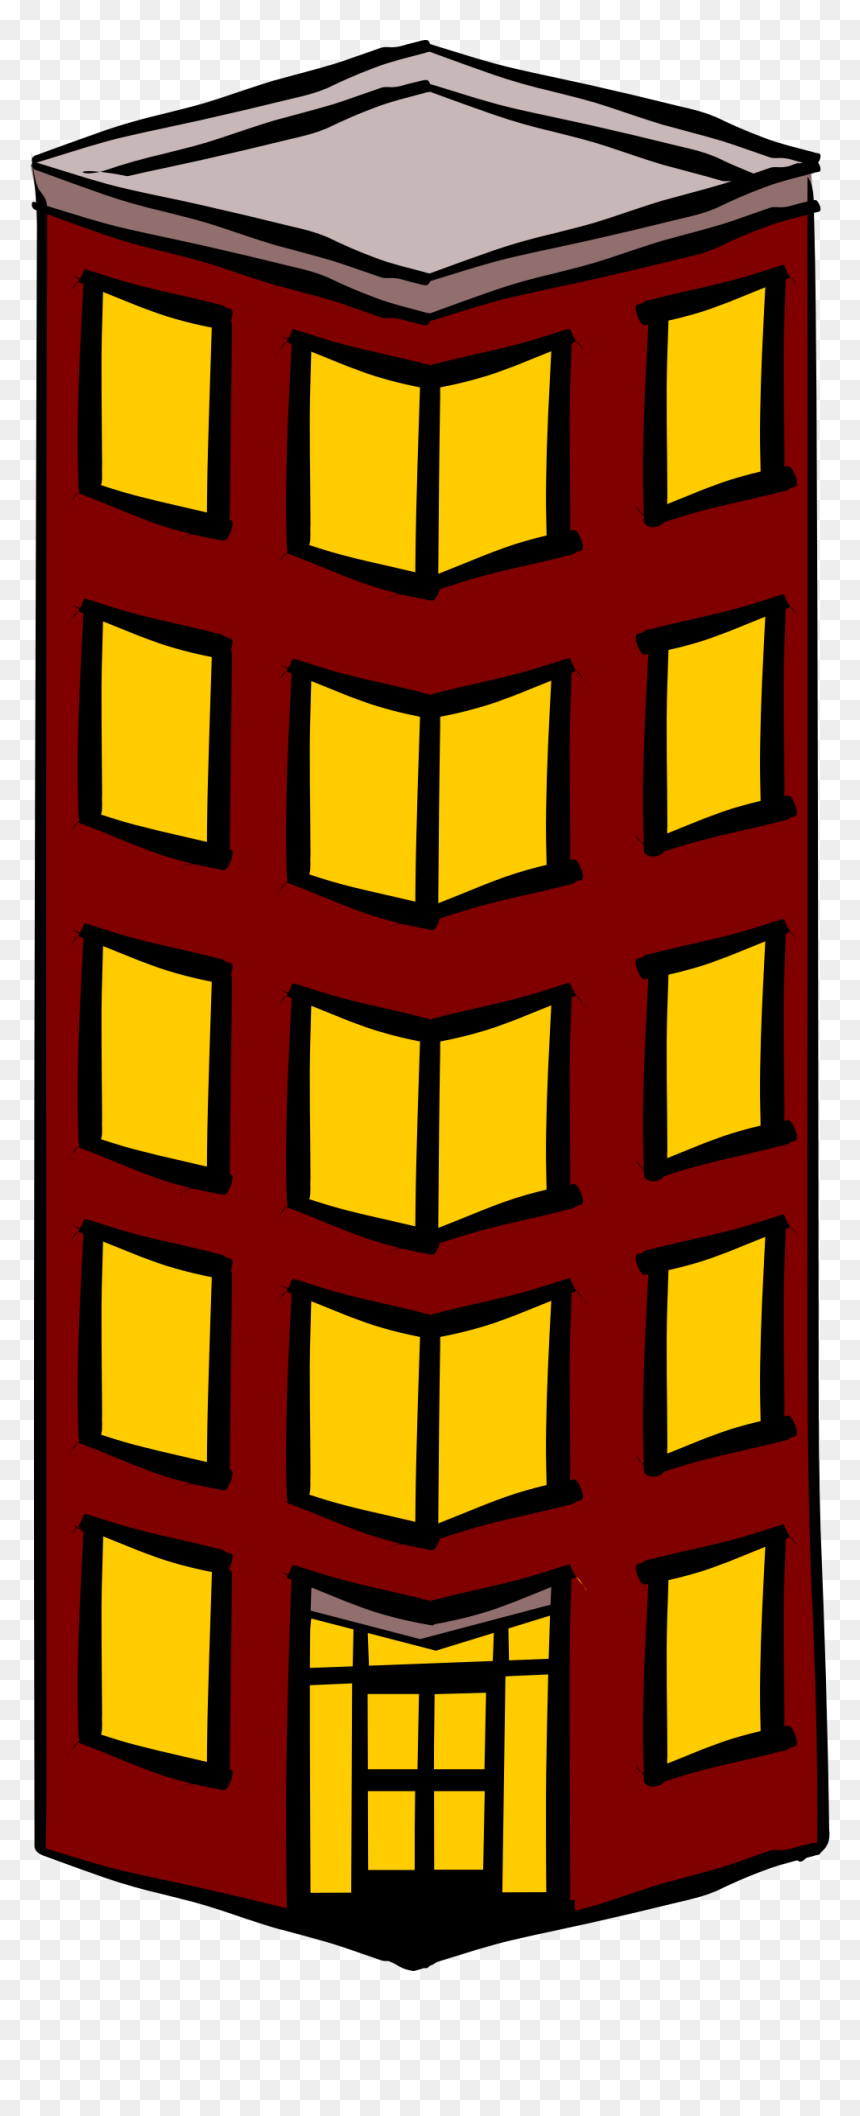 Free Building Clipart, Download Free Clip Art, Free Clip Art on Clipart  Library